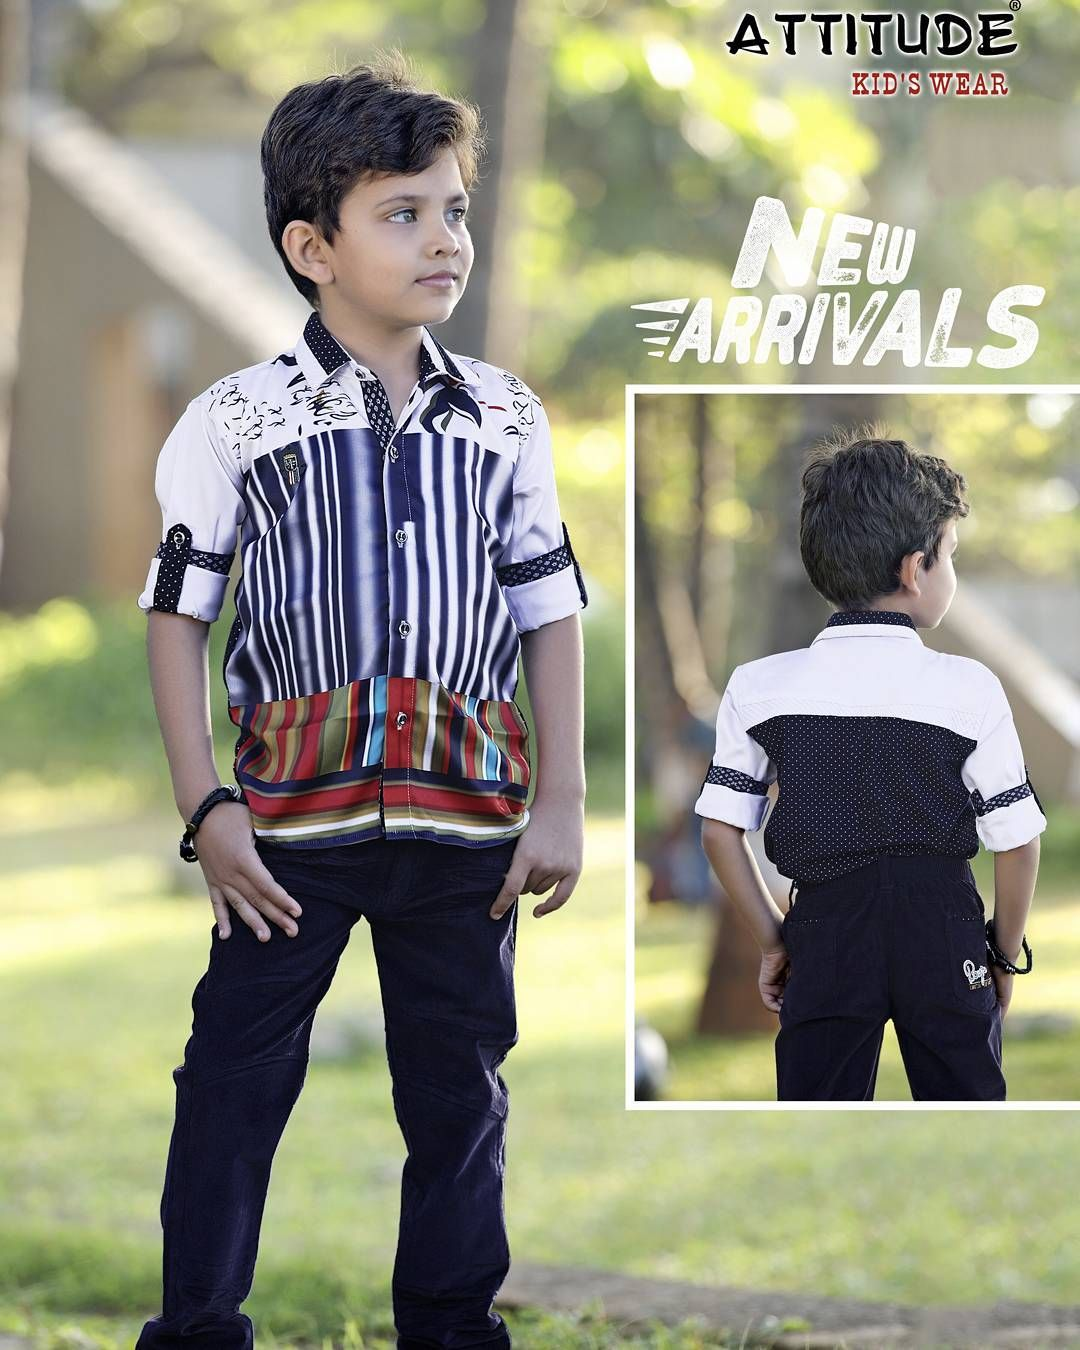 176e58cb4 With #AttitudeKidsWear #NewArrivals #Kids #Garments #Boys #Clothing #Style  #India #MakeInIndia #Designer #Trendy #Smart #Casual #ComfortWear #EyeCandy